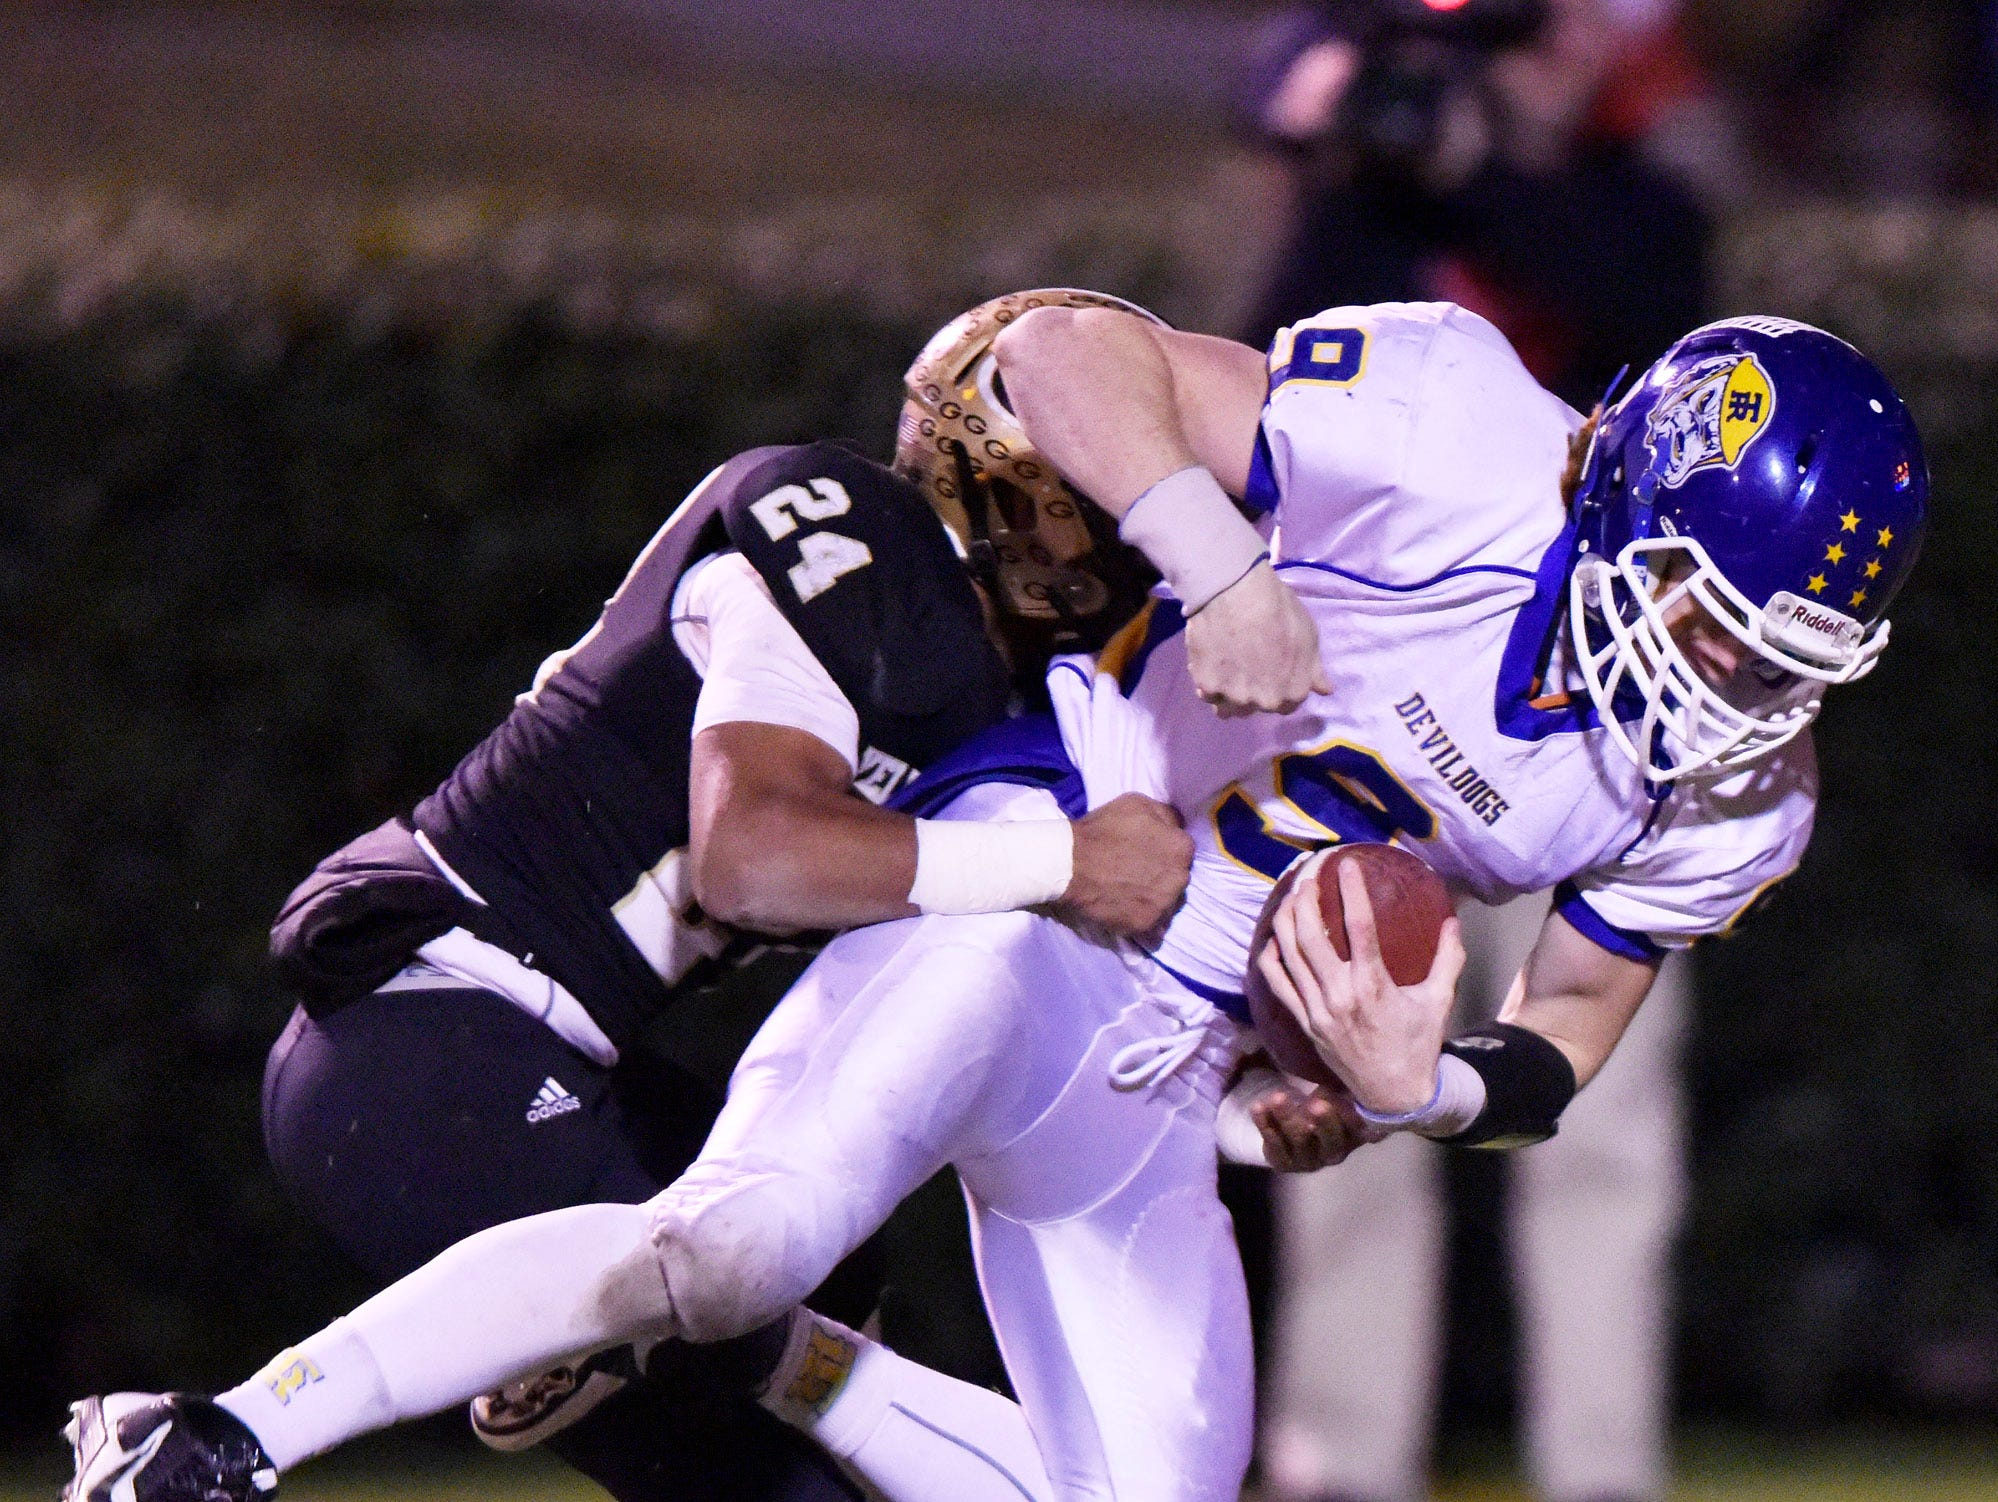 Travelers Rest's Chris Gomia (9) scores with Greer's Adrian McGee (24) in tow.